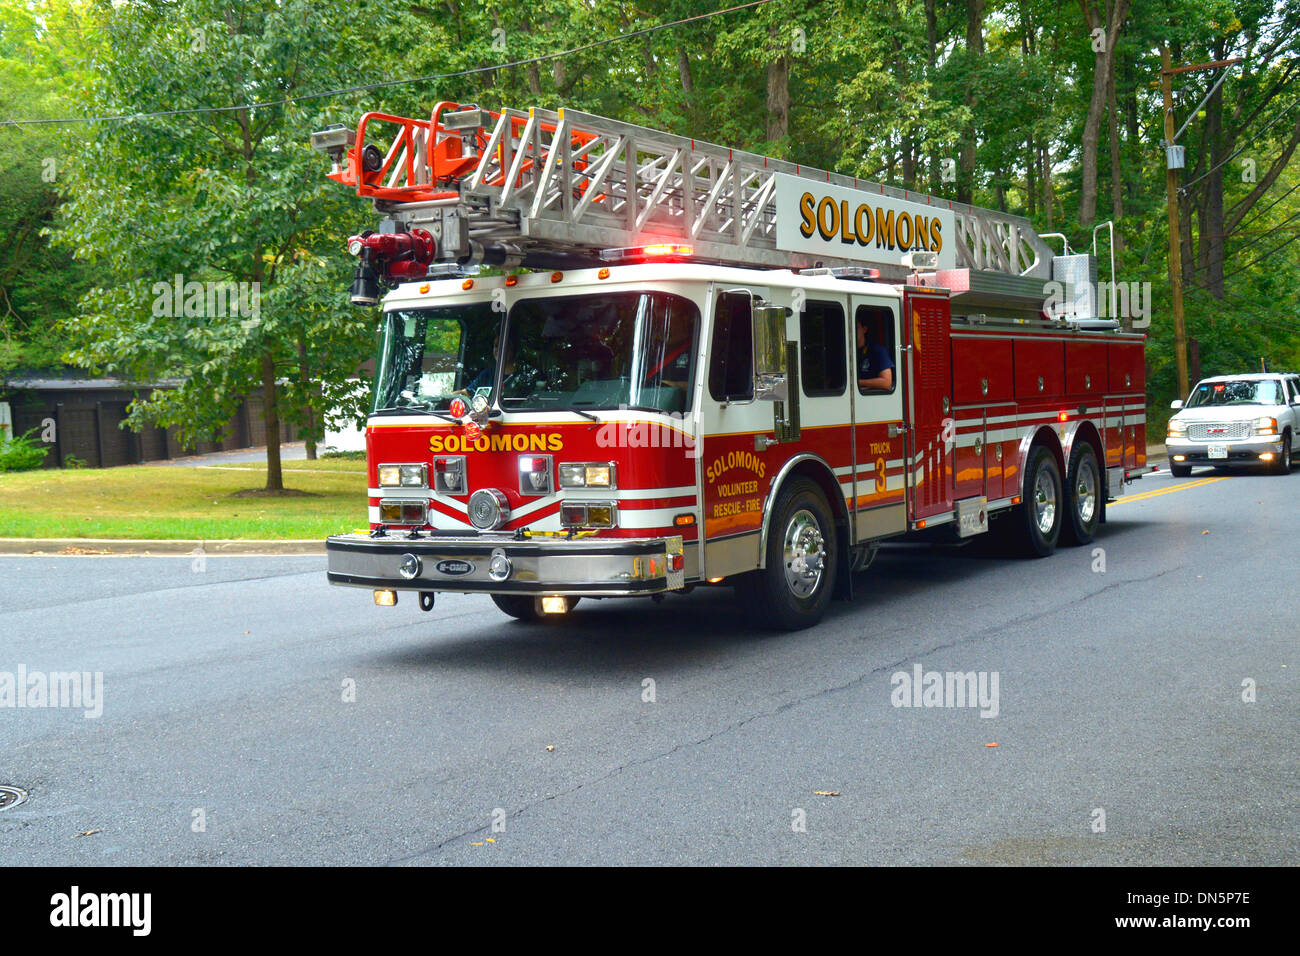 A Ladder truck fire truck from Solomon's Volunteer Fire Department responding on a call - Stock Image